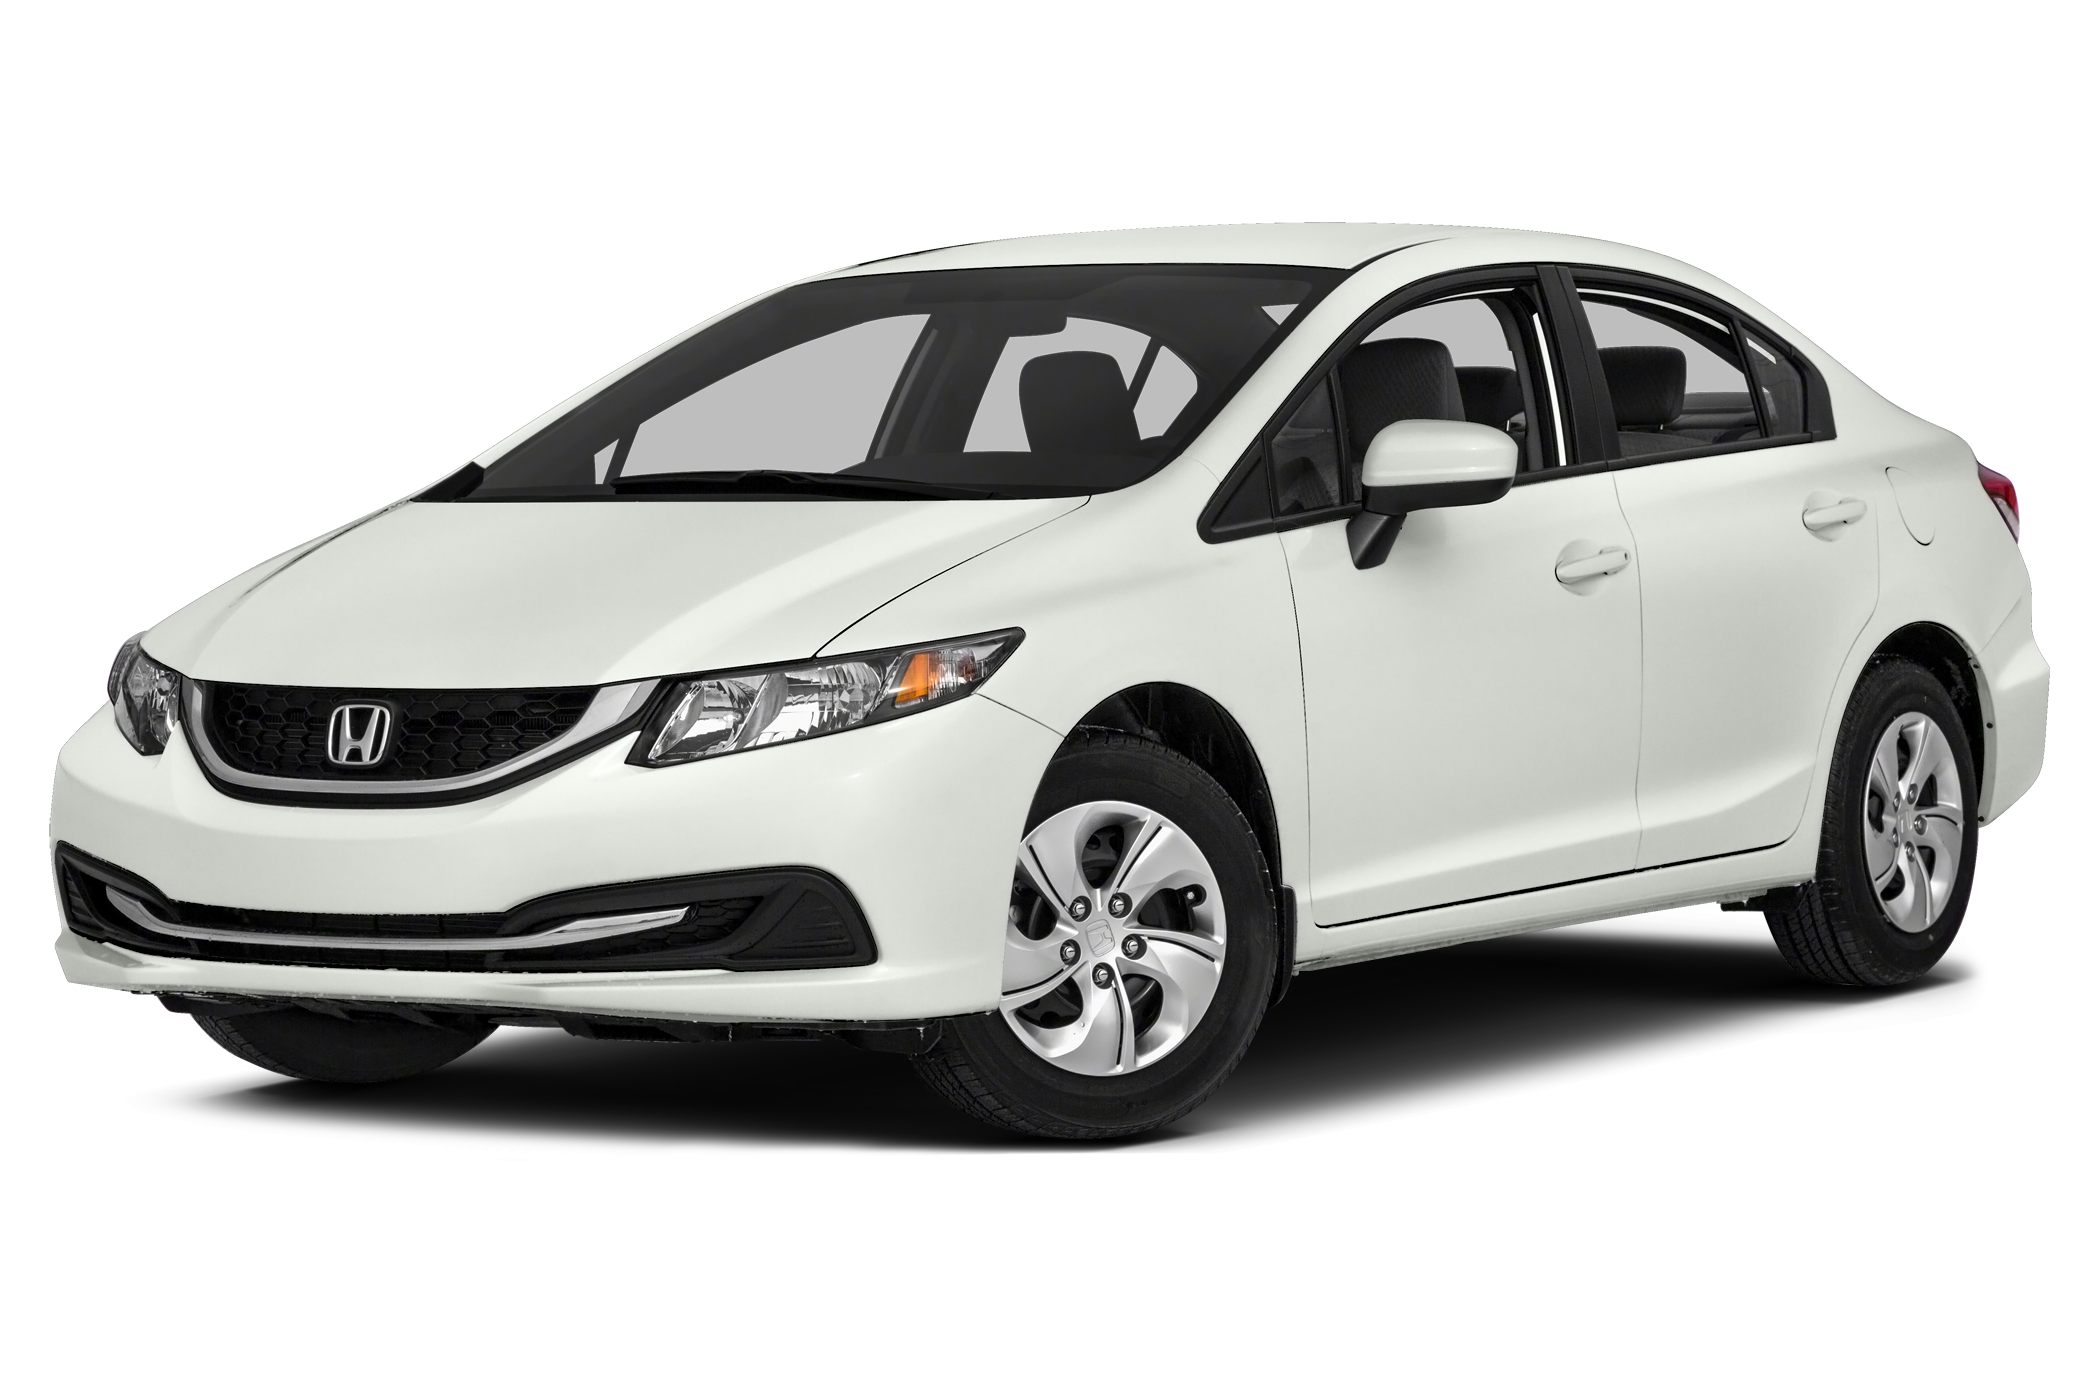 2014 Honda Civic LX Other features include Bluetooth Power locks Power windows CVT Transmissio